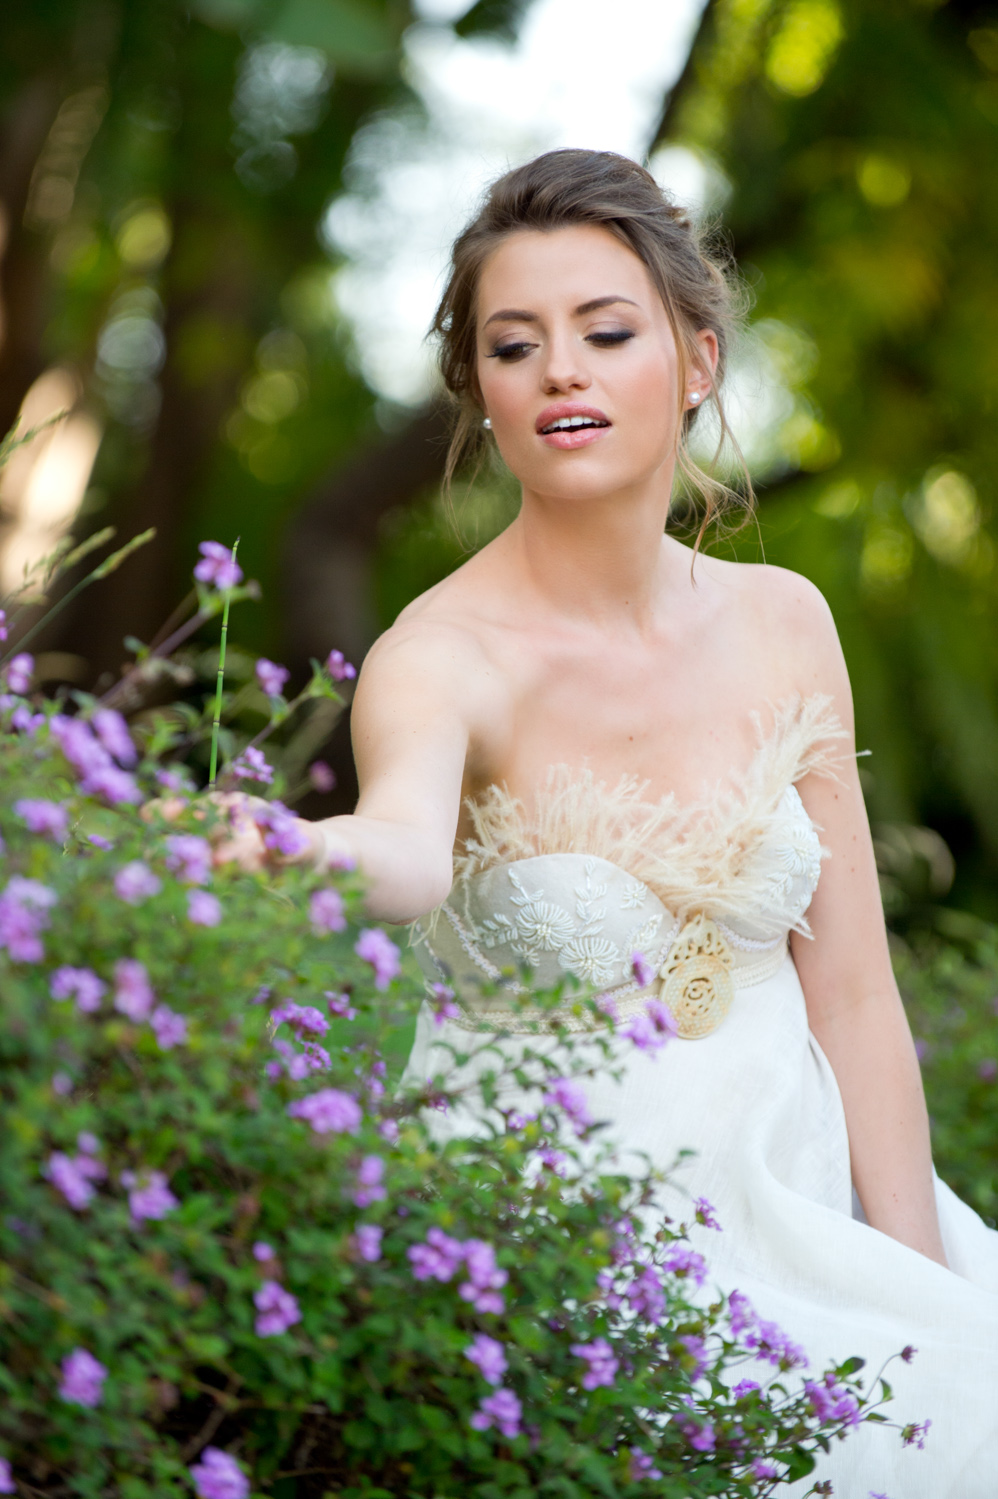 Bridal Fashion Photograhy 015.jpg